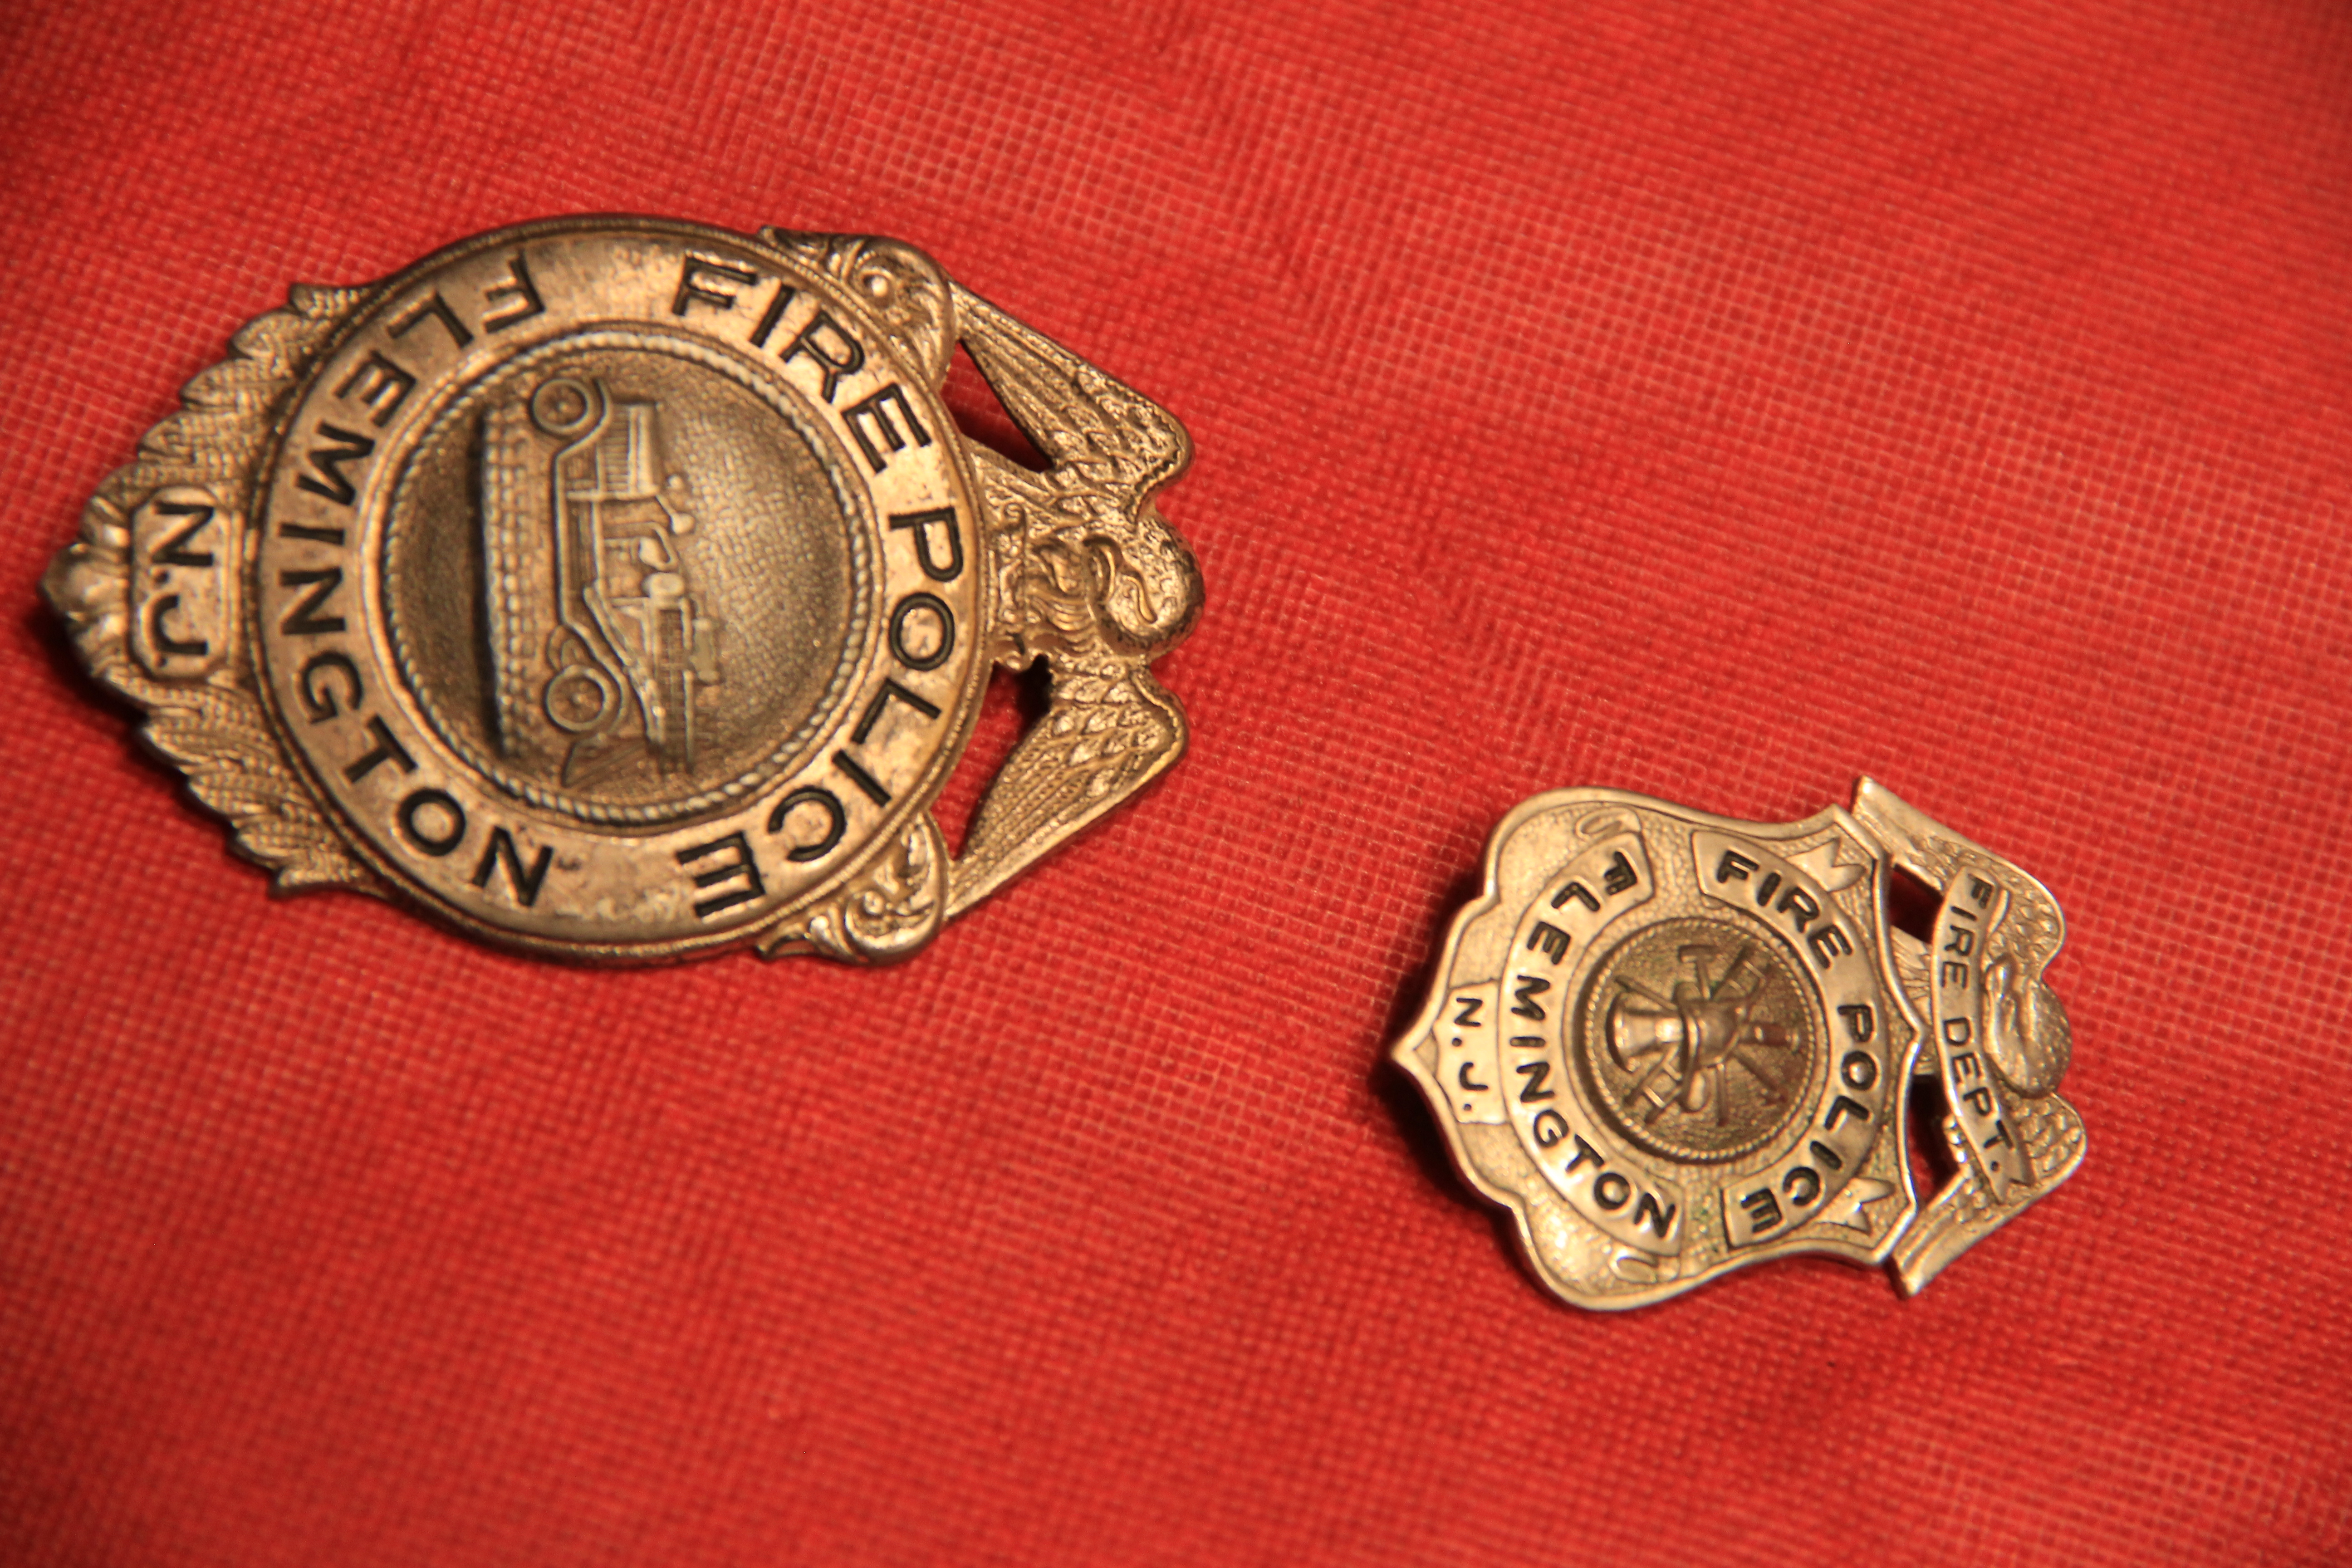 Fire police badges